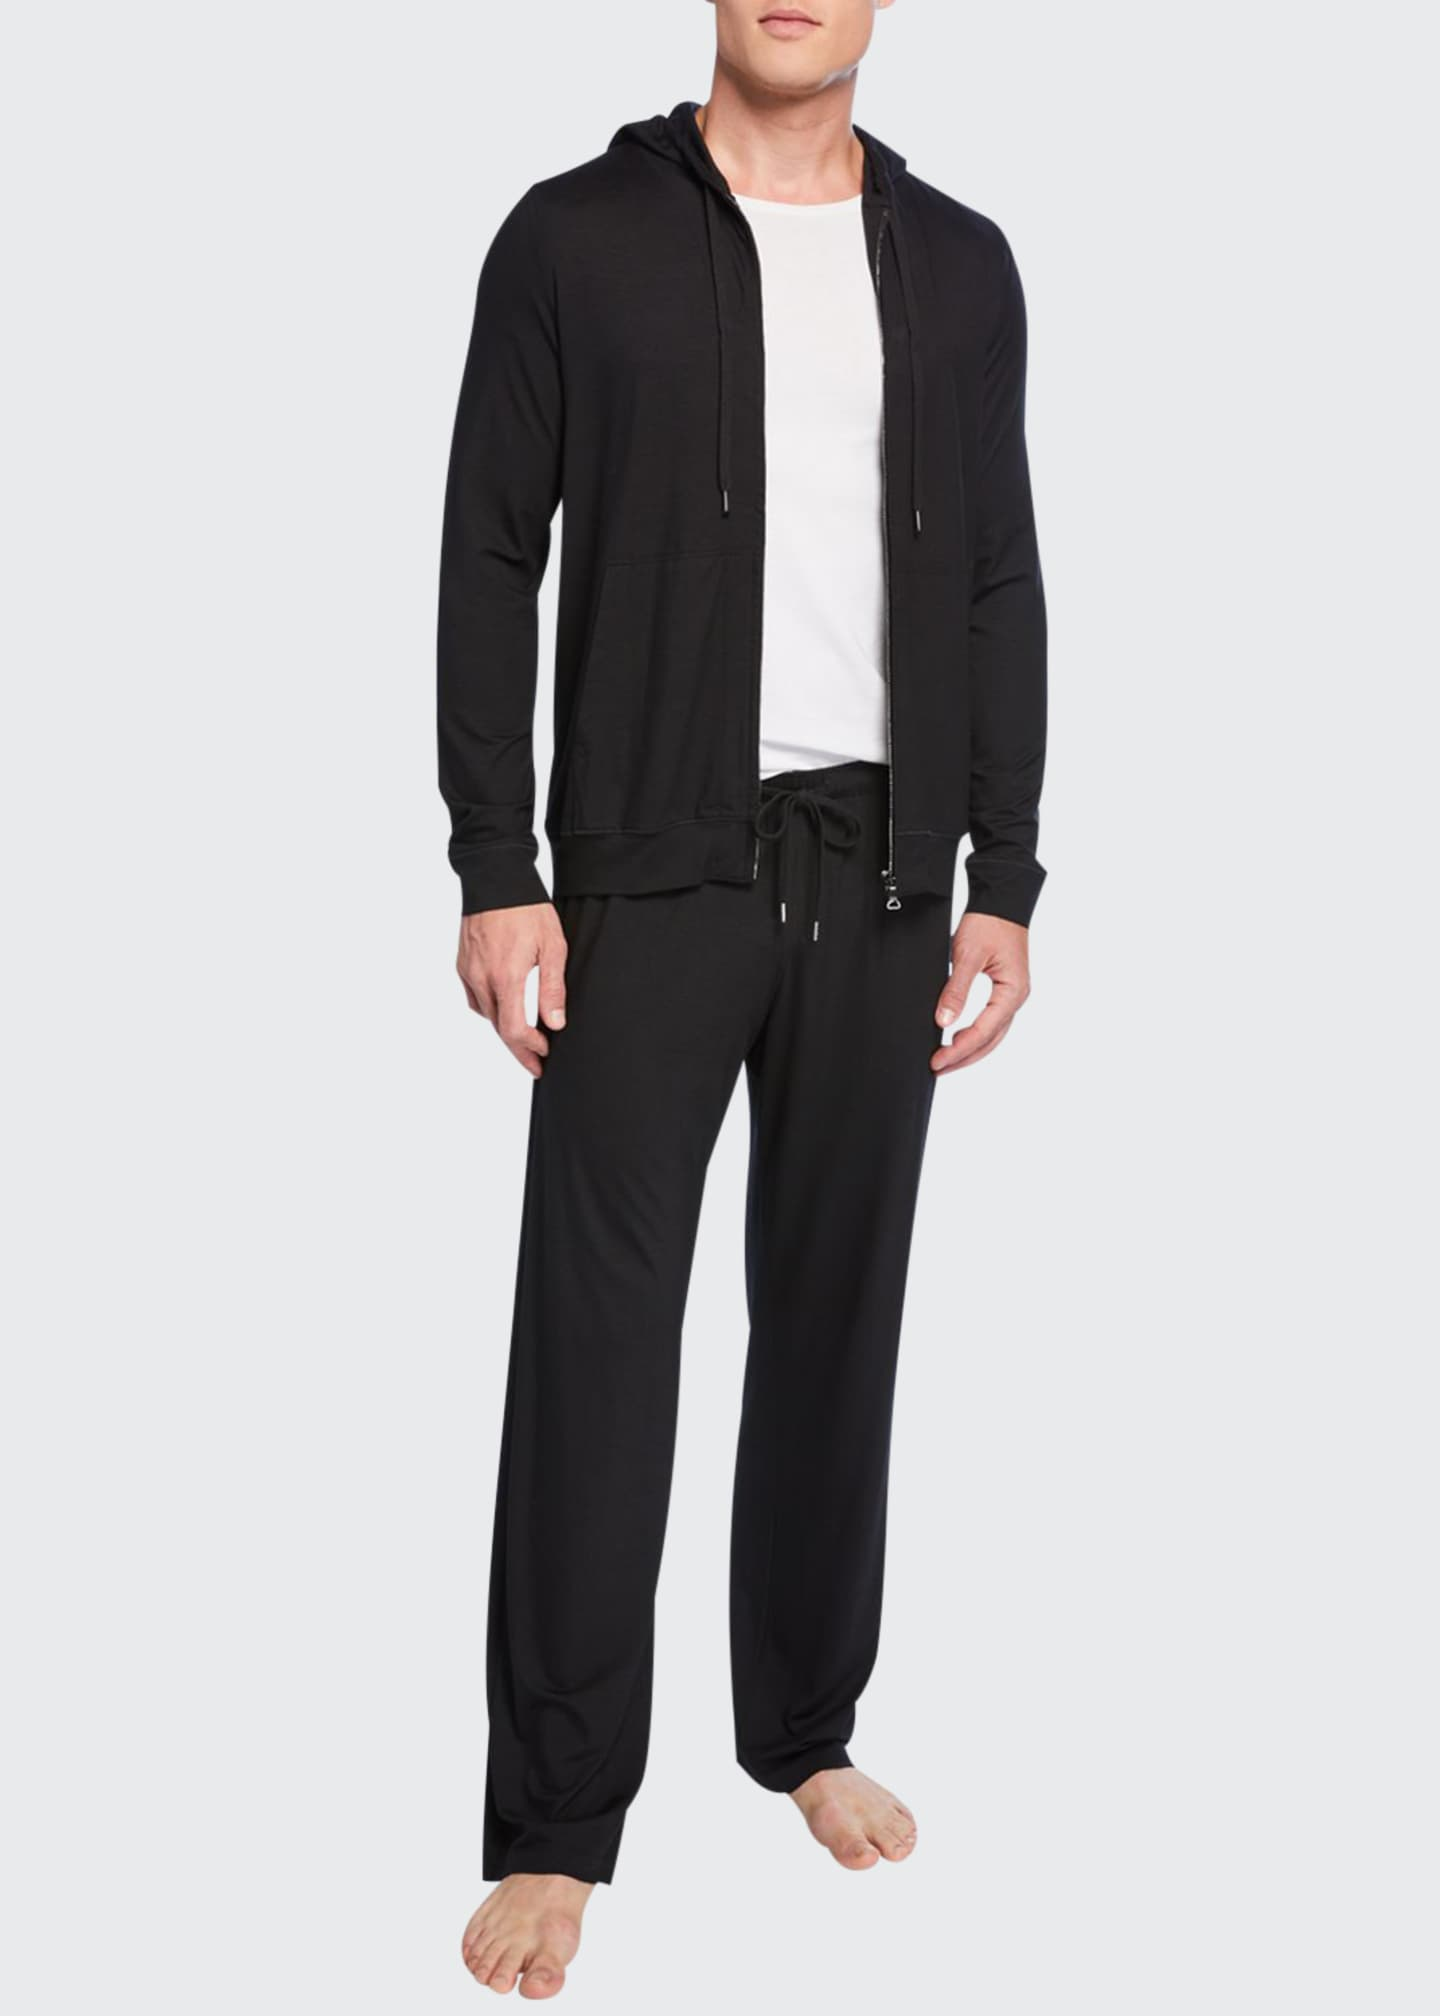 Derek Rose Men's Basel 1 Jersey Lounge Pants